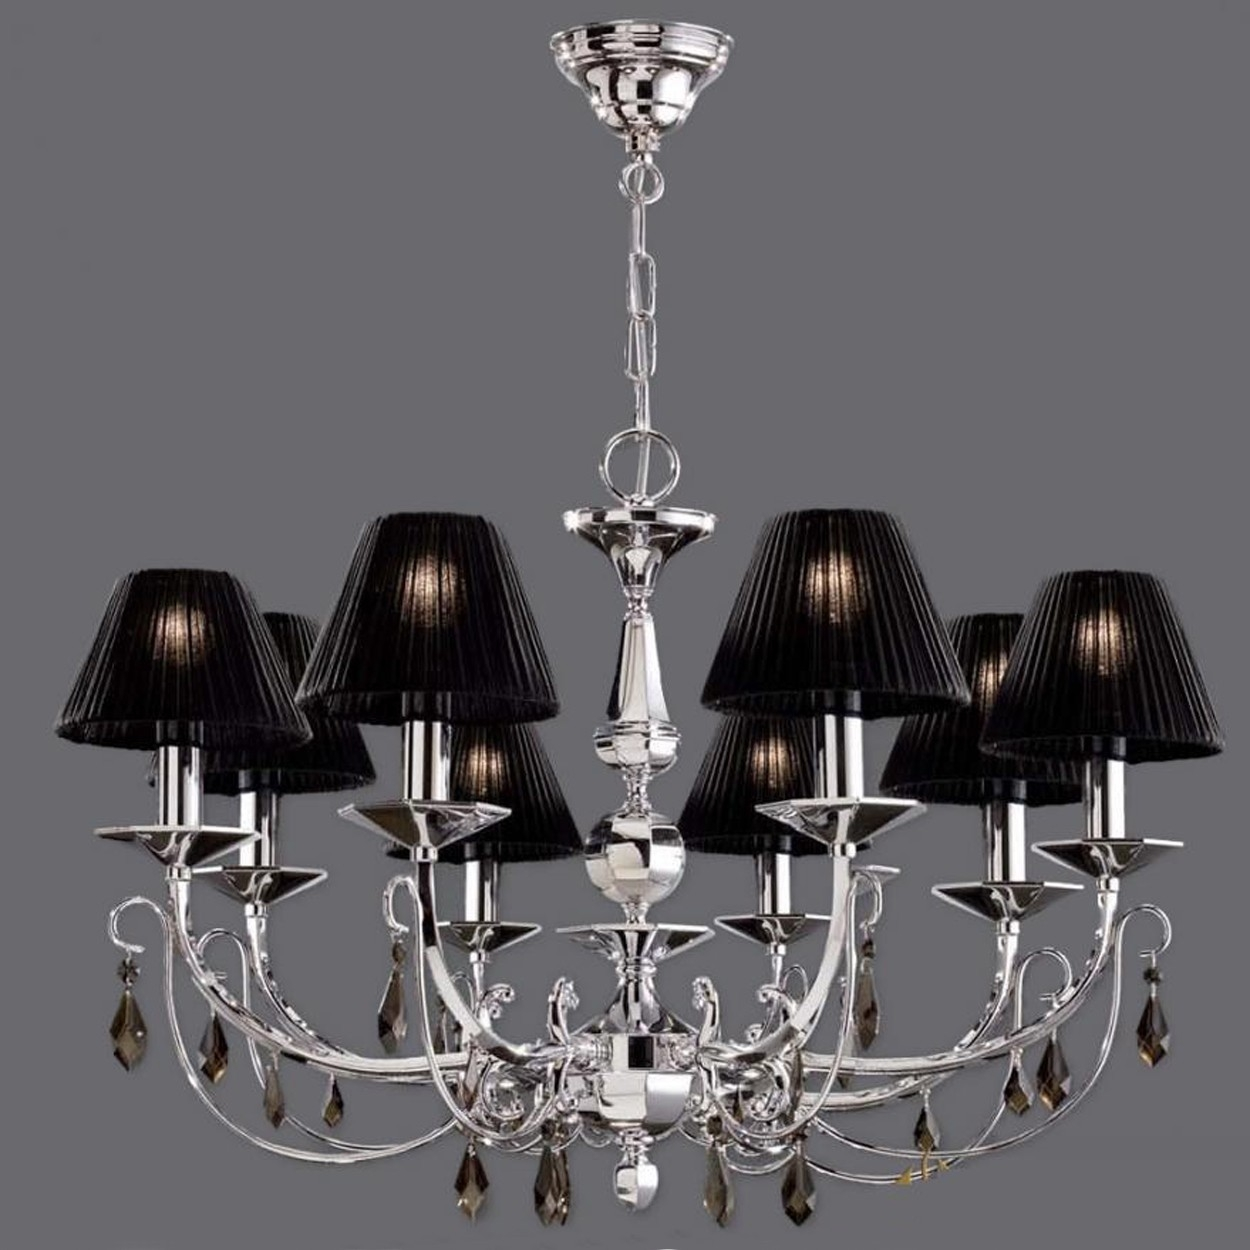 Contemporary Very Small Chandelier Shades Design Ideas With Regard To Chandeliers With Black Shades (Image 11 of 25)